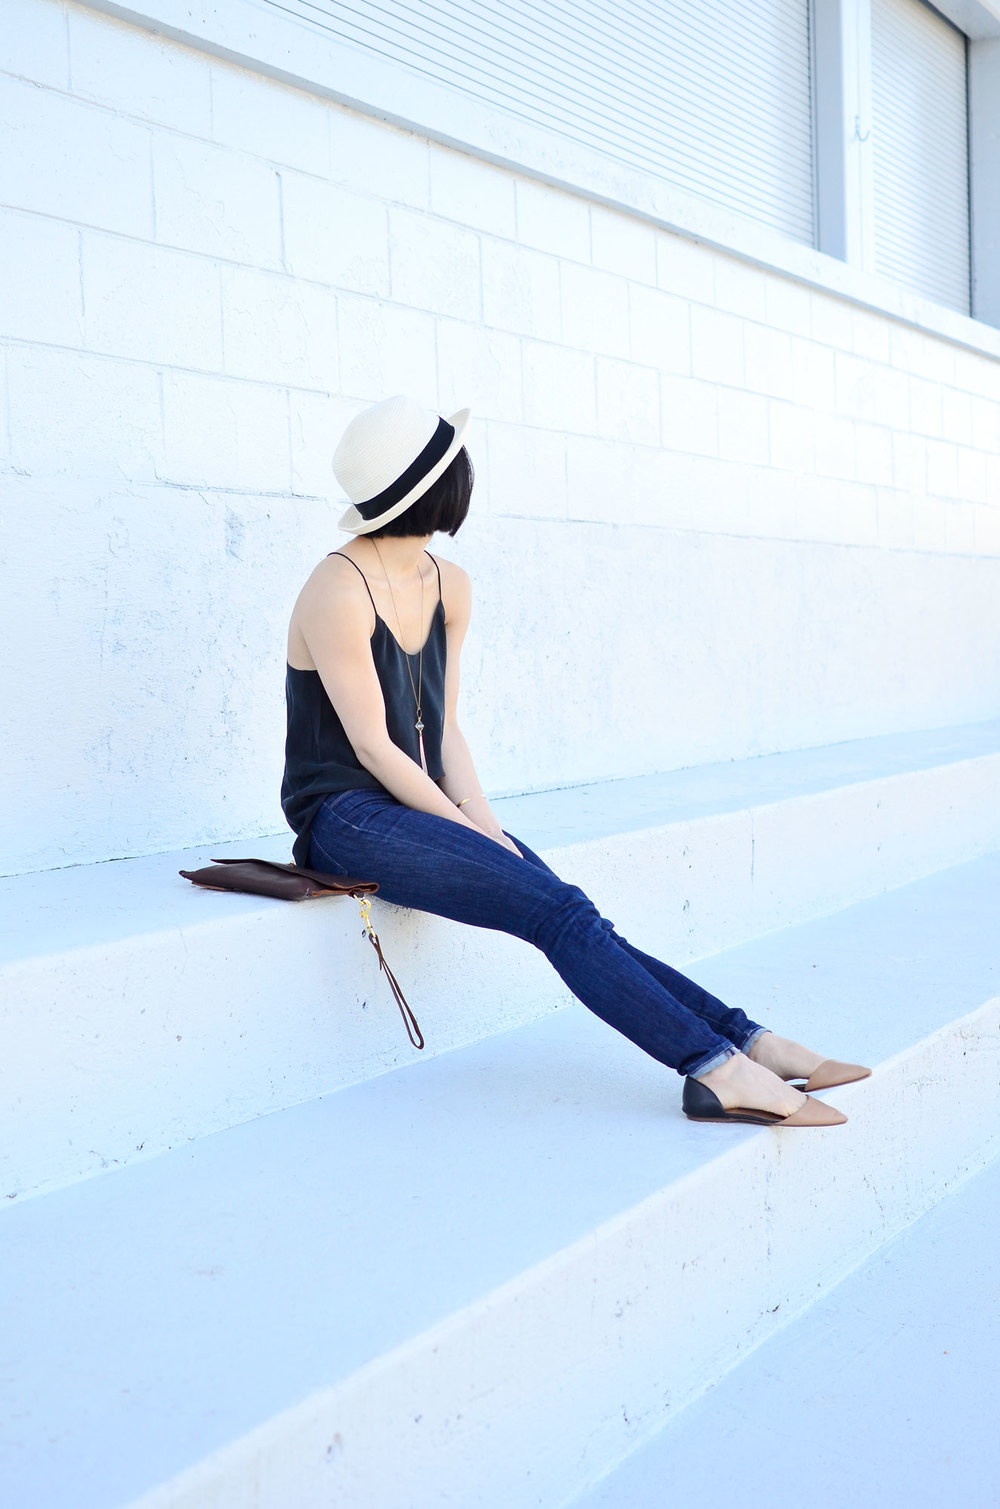 Talula Pelham hat, Grana silk racerback camisole, DTSLD high waisted skinny jeans, Crafts and Love Sam necklace and Mina cuff, Margaret Vera Kodiak clutch, Halogen Kayla flats